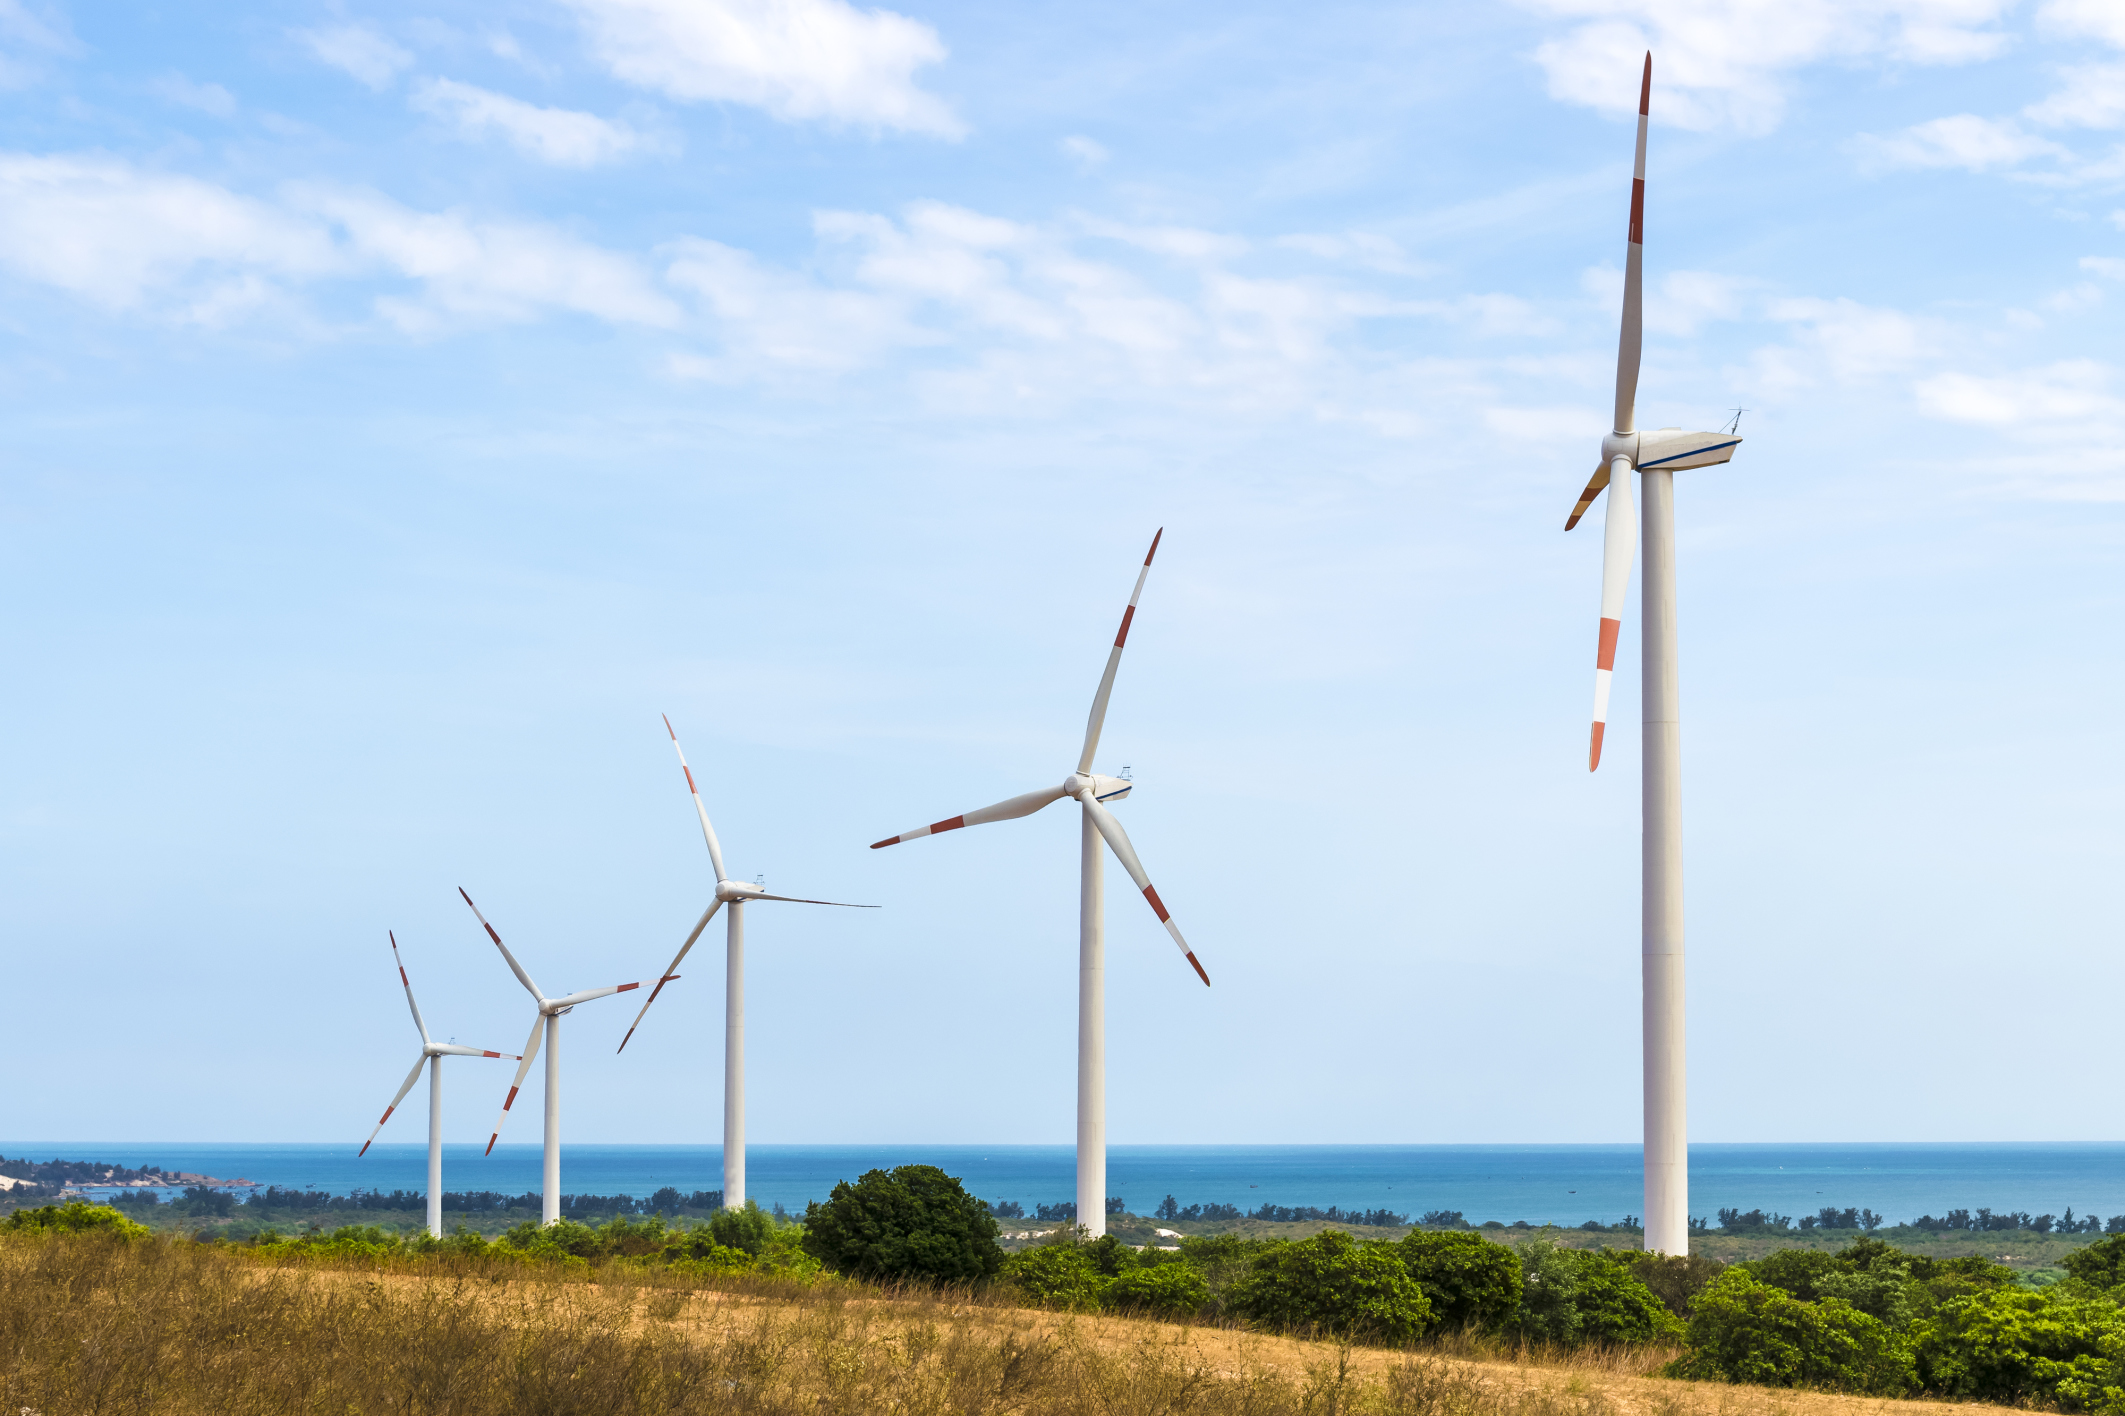 Preliminary assessments along the 7,600 kilometre long Indian coastline have indicated prospects of development of offshore wind power (Photo: Thinkstock)